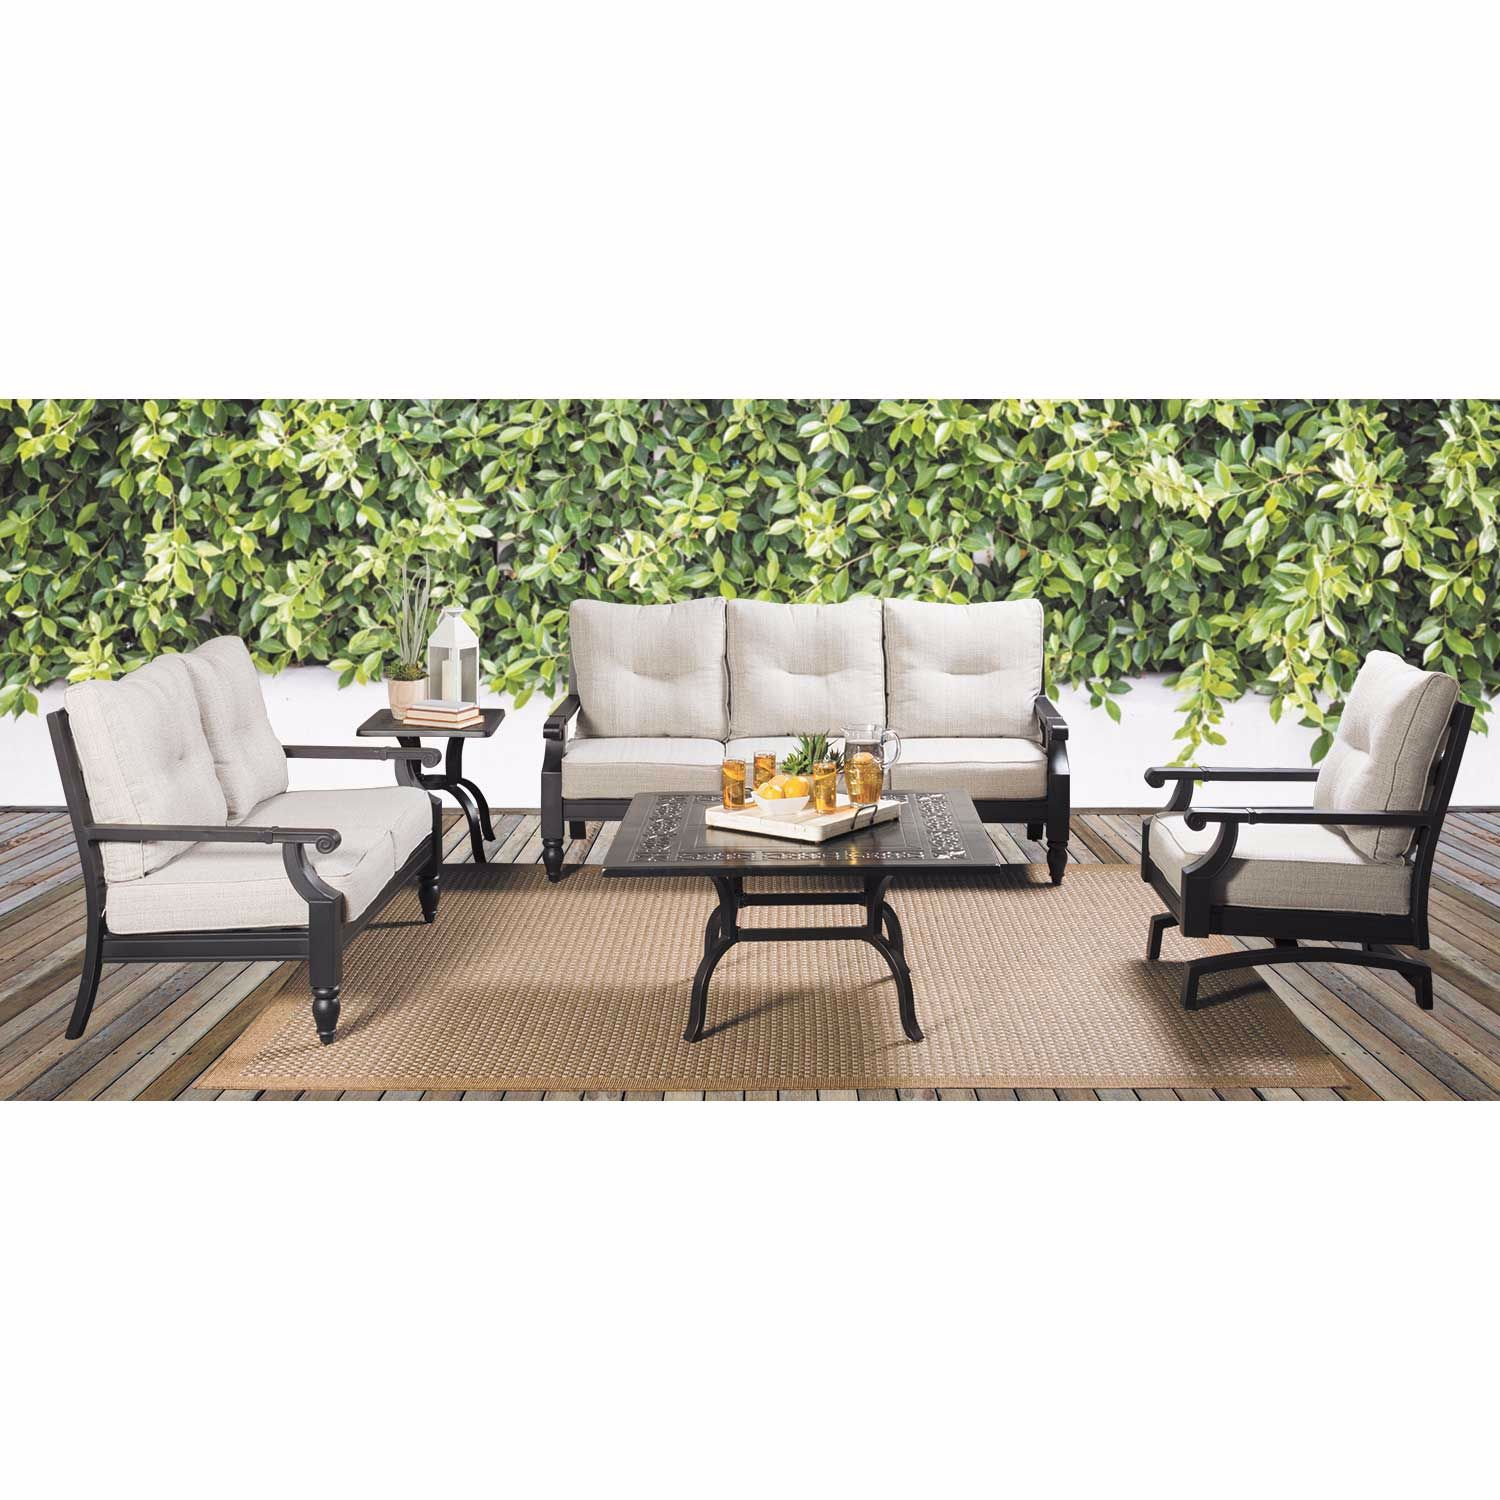 Picture of Ashville Patio Loveseat with cushion